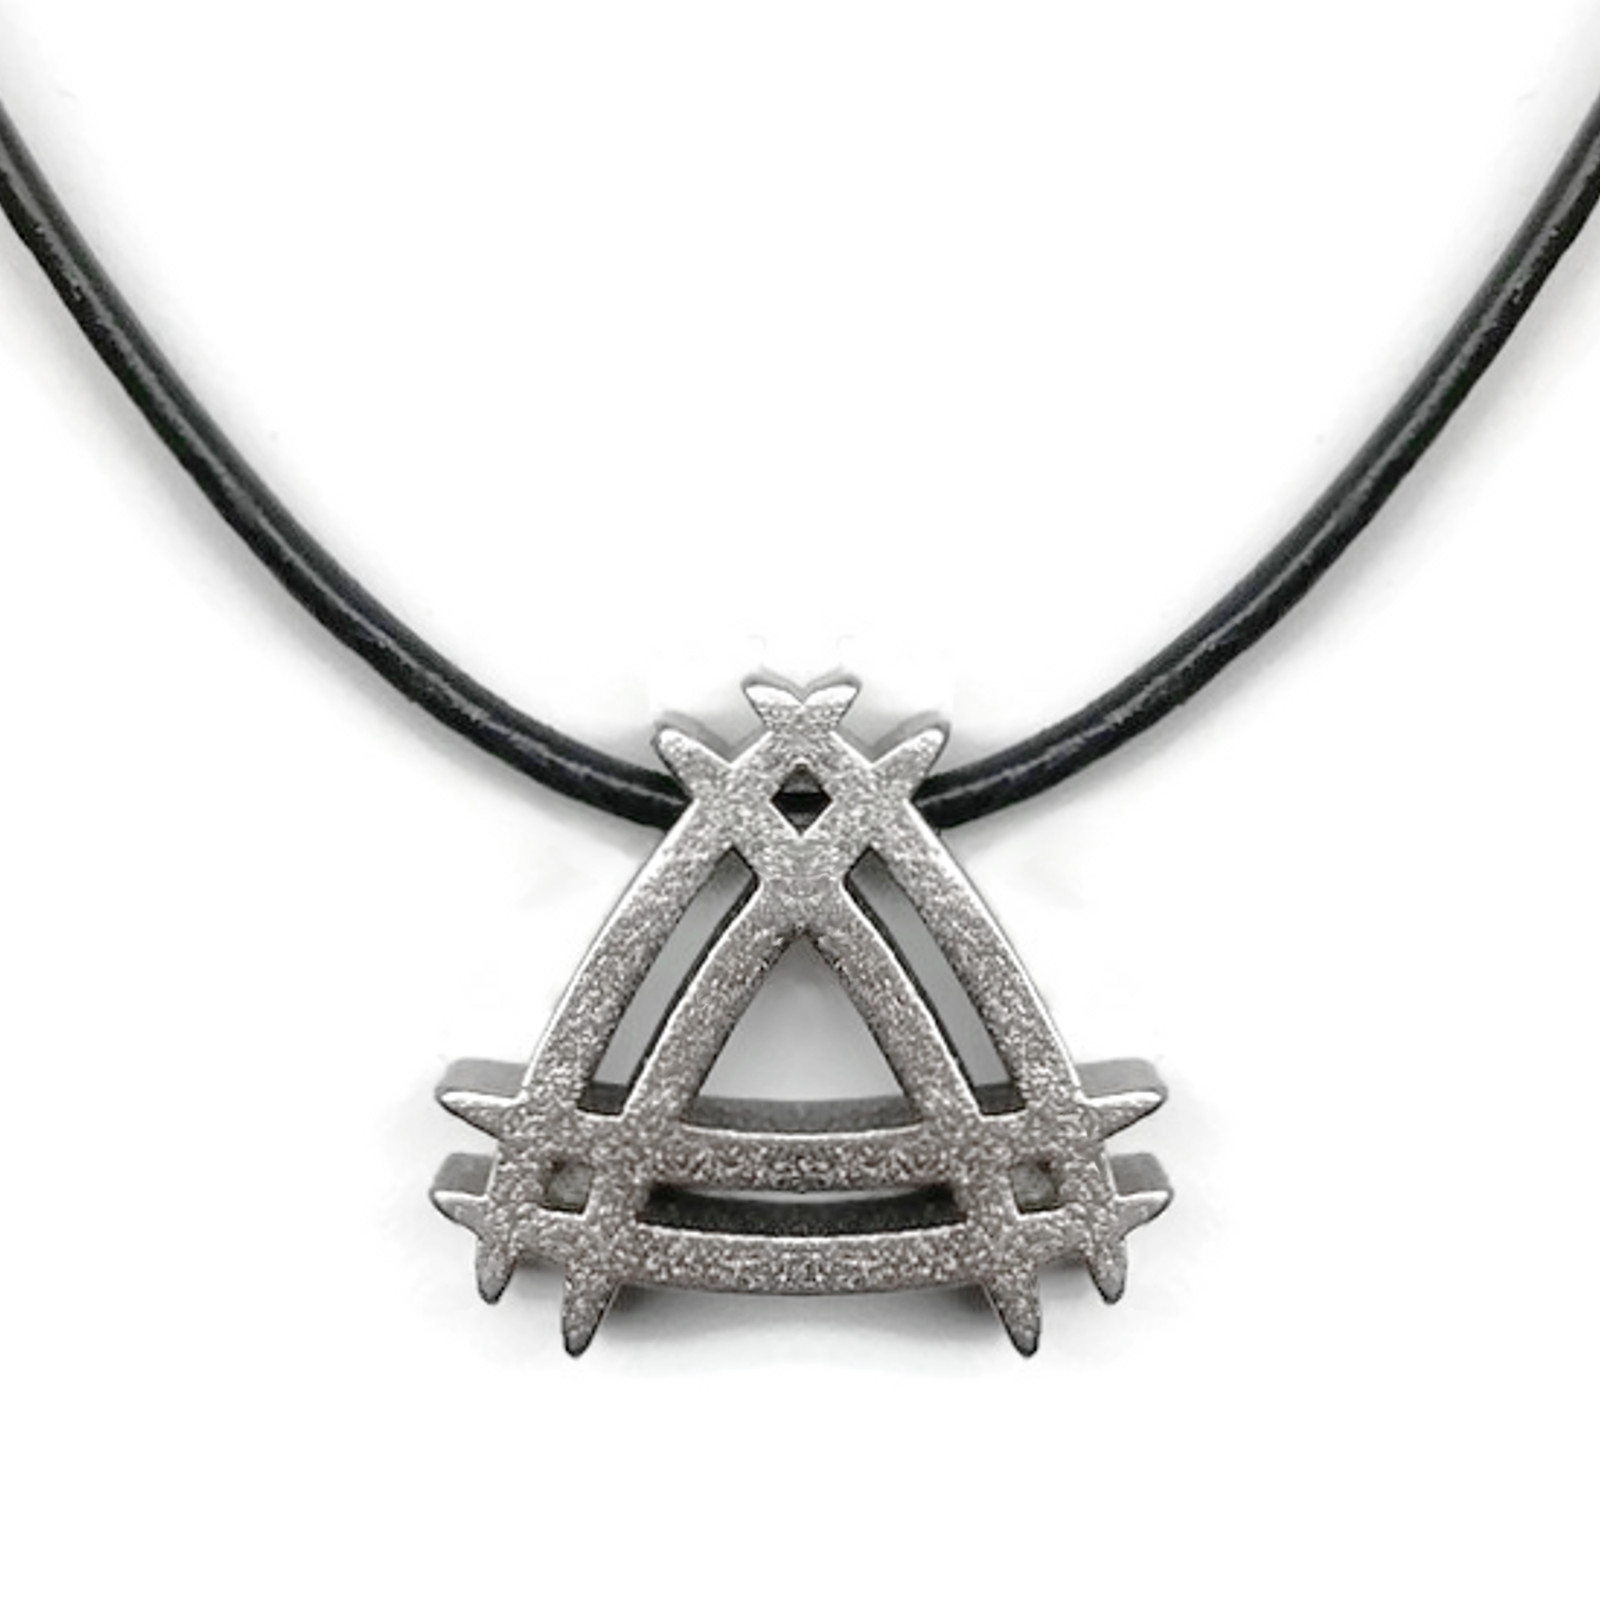 Double triangle handrawn 3d printed steel pendant necklace loralyn unique mens stainless steel necklace exclusive design mozeypictures Image collections